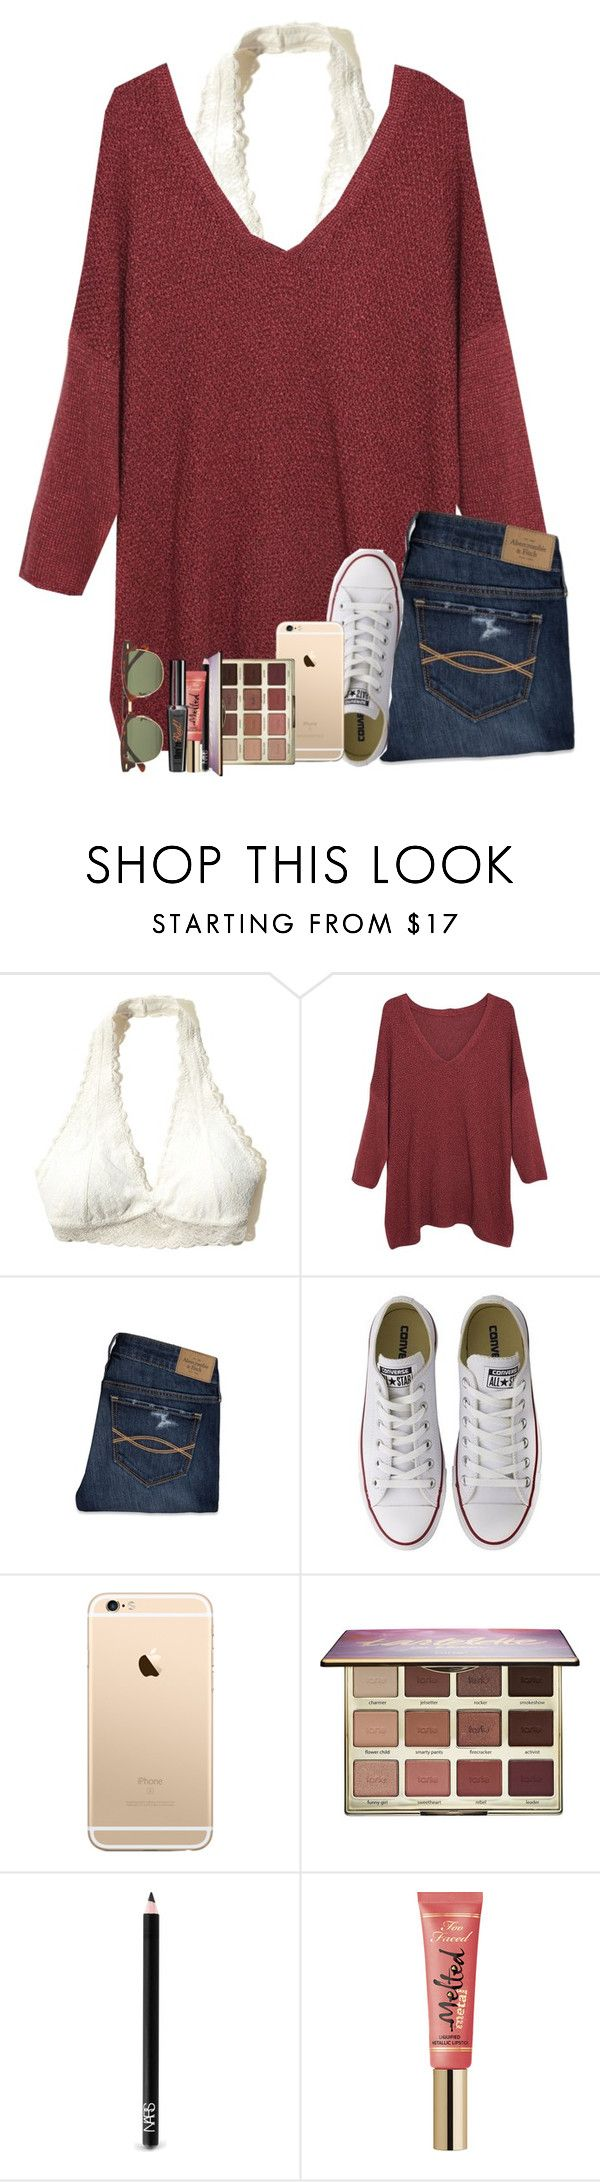 """""""{guys, I'm really sorry for my inactivity!!}"""" by southerngirl03 ❤ liked on Polyvore featuring Hollister Co., Violeta by Mango, Abercrombie & Fitch, Converse, tarte, NARS Cosmetics, Too Faced Cosmetics and Ray-Ban"""